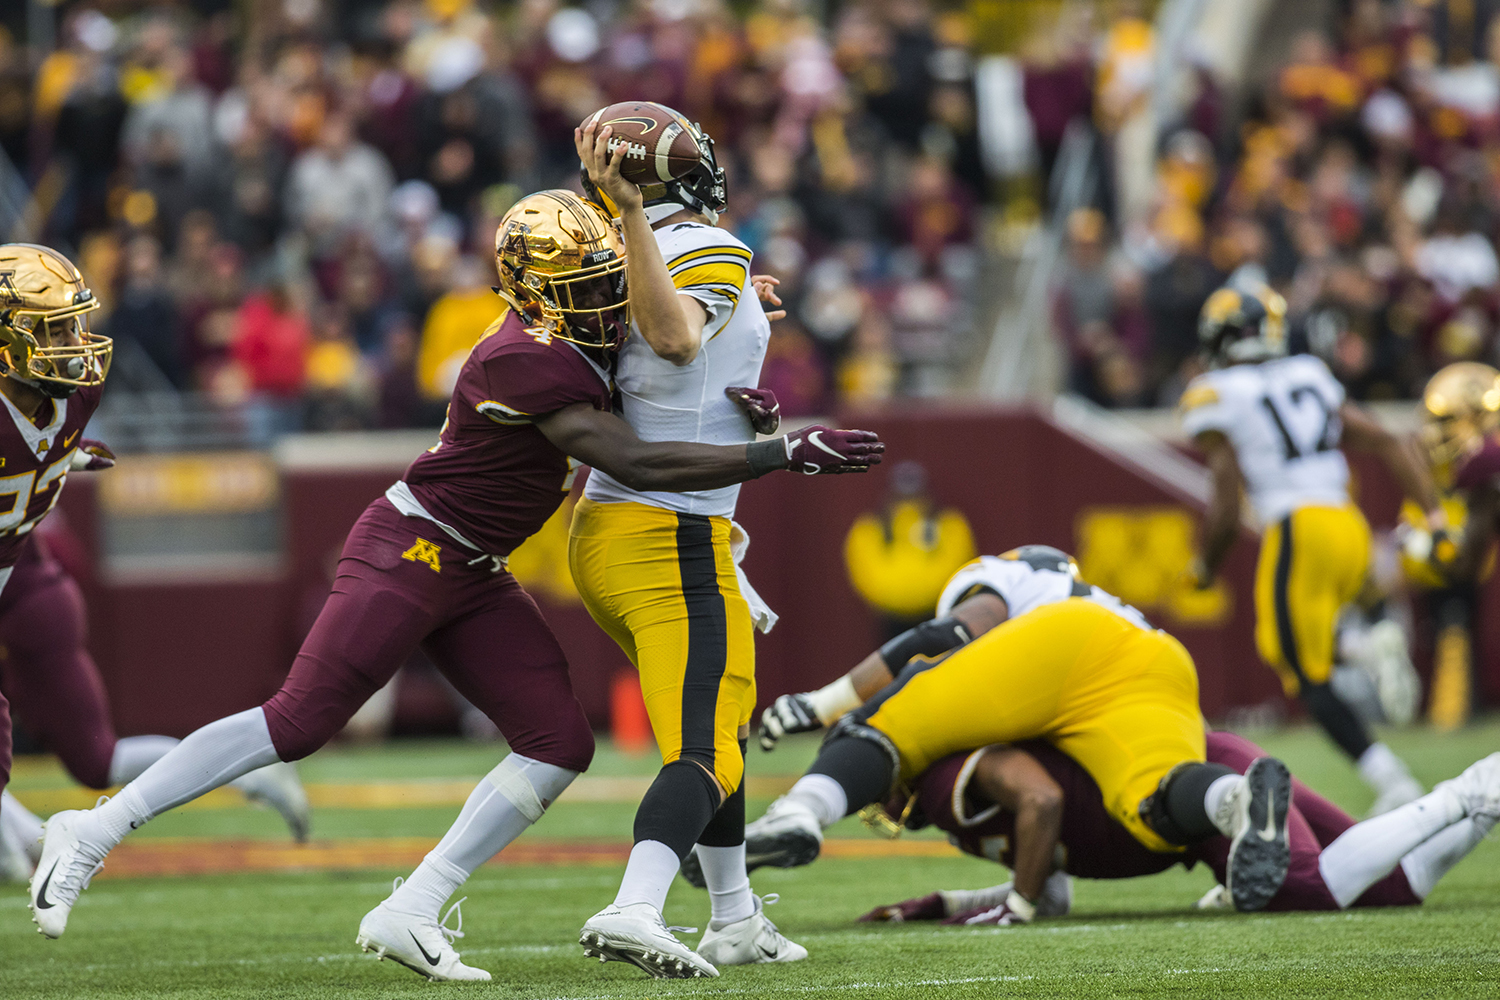 Iowa+quarterback+Nate+Stanley+is+sacked+during+the+Iowa%2FMinnesota+football+game+at+TCF+Bank+Stadium+in+Minneapolis+on+Saturday%2C+October+6%2C+2018.+The+Hawkeyes+defeated+the+Golden+Gophers%2C+48-31.+